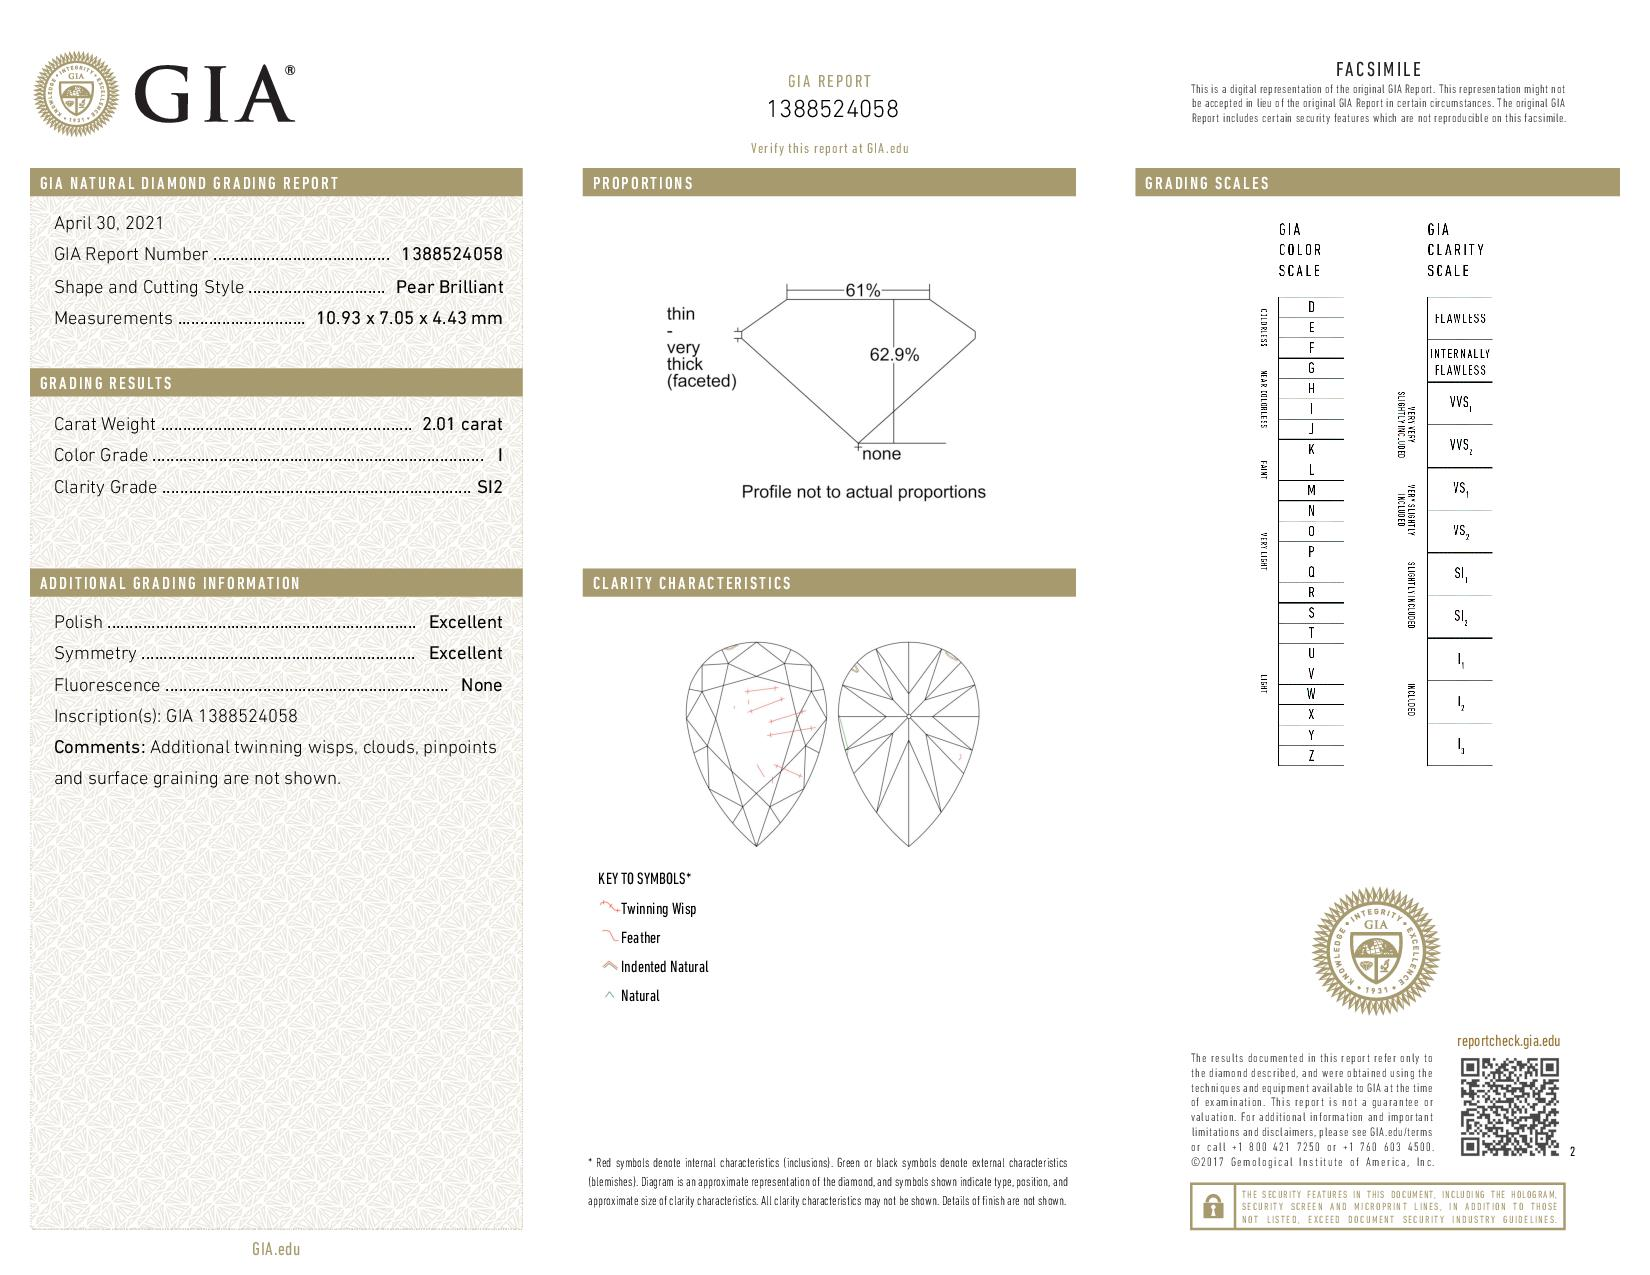 This is a 2.01 carat pear shape, I color, SI2 clarity natural diamond accompanied by a GIA grading report.